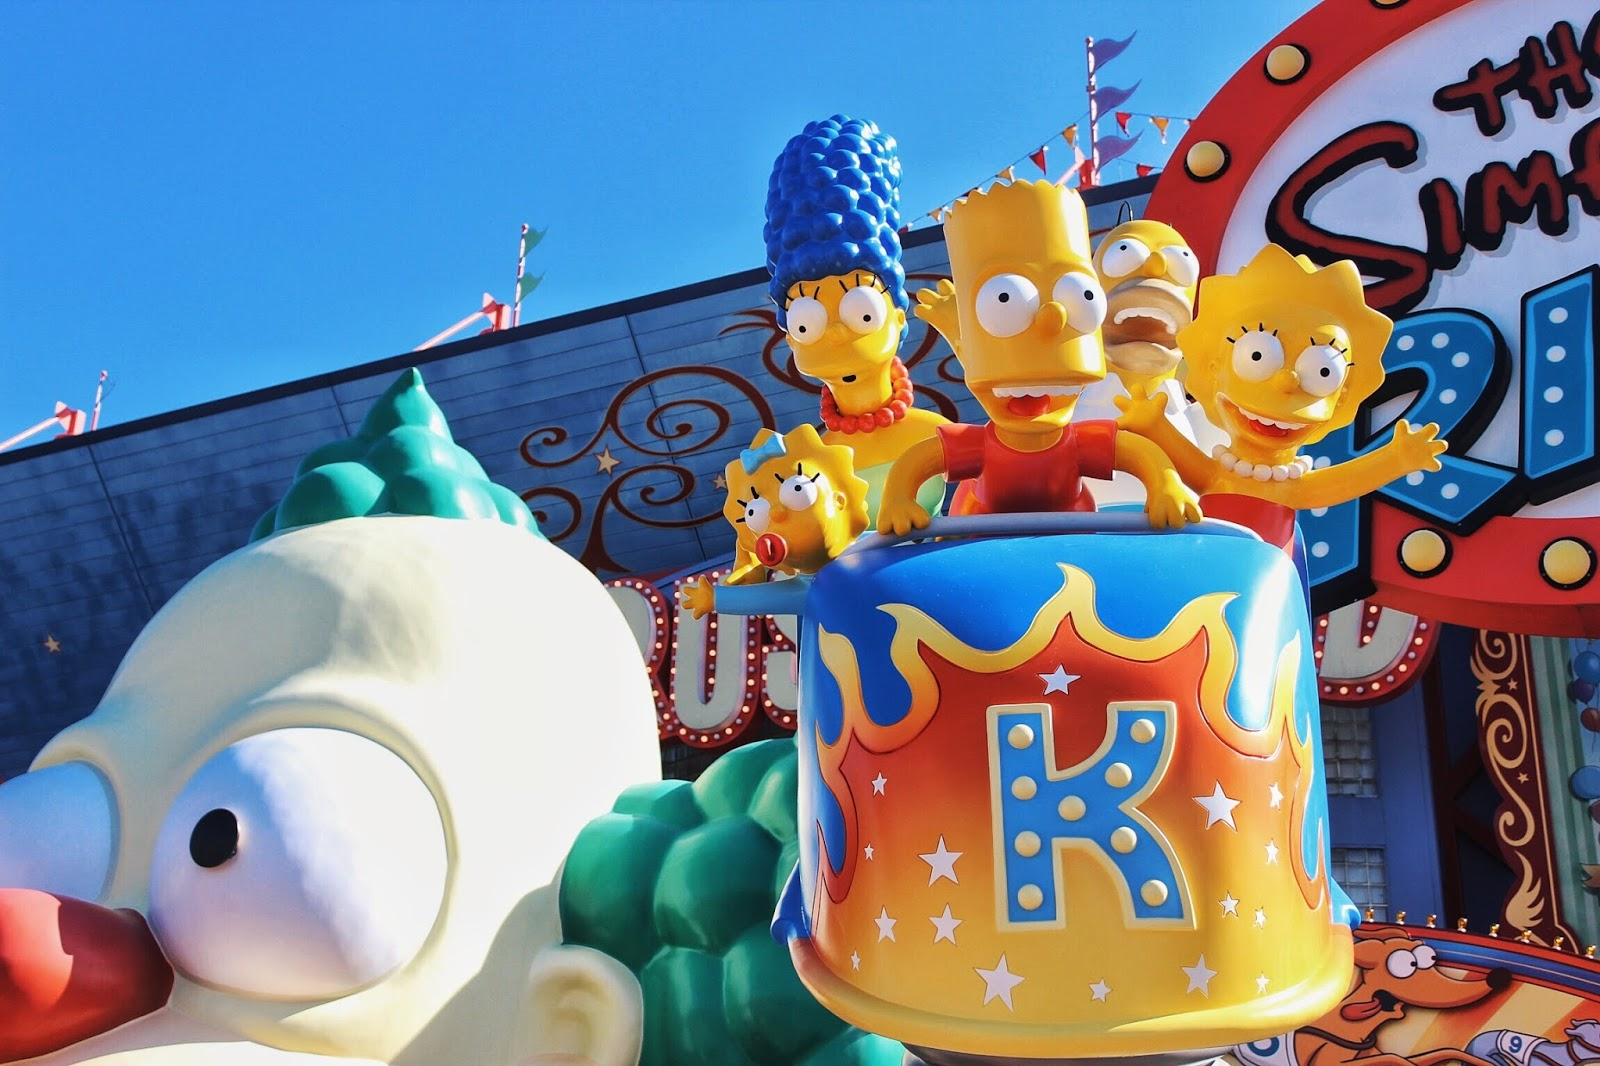 lifesthayle-springfield-universal-the-simpsons-ride-detalhes.JPG